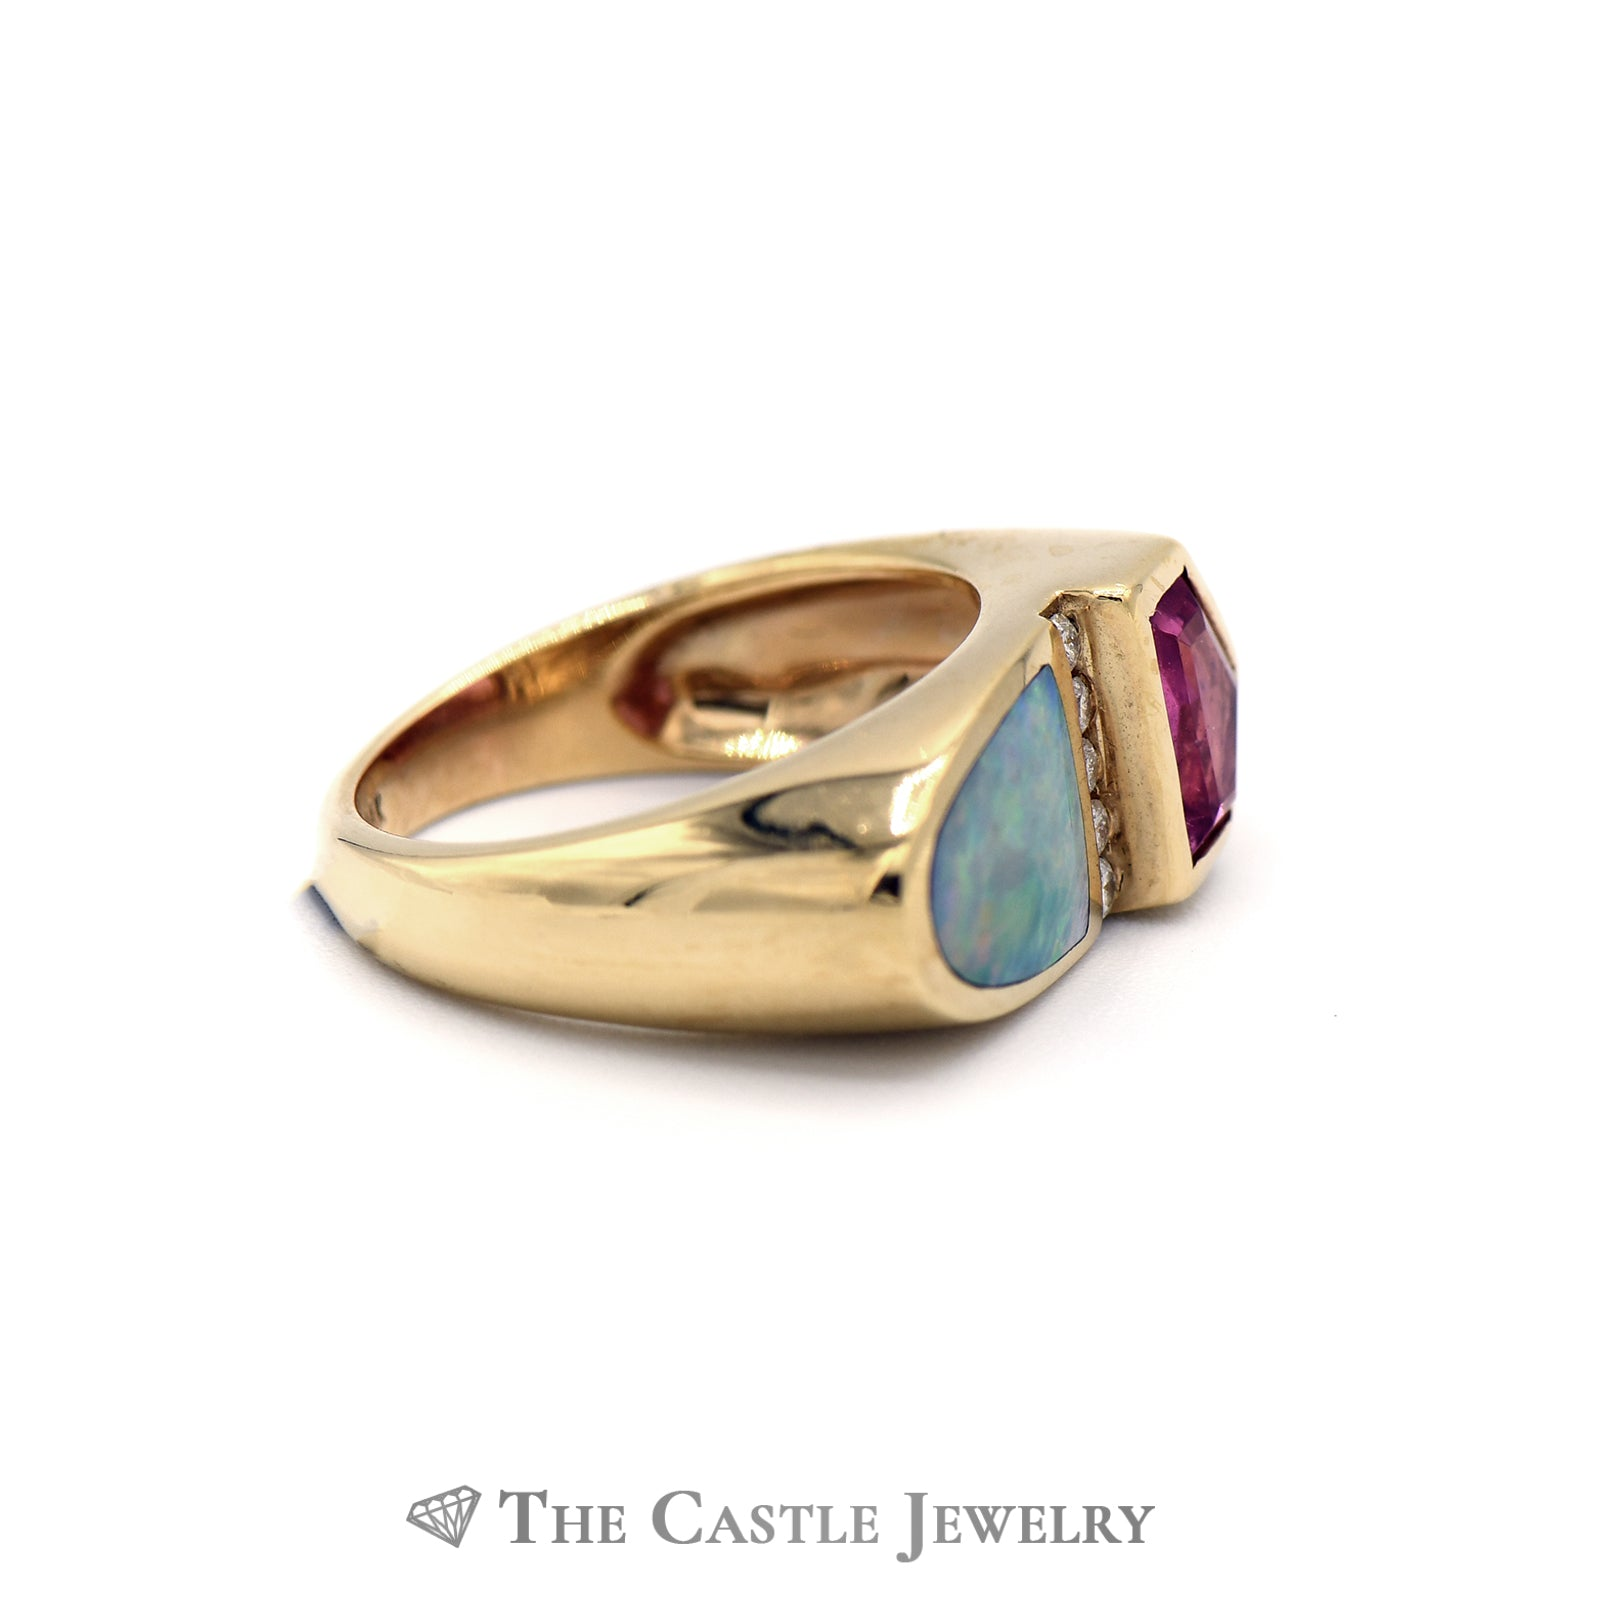 Kabana Rubellite & Diamond Ring with Opal Inlay in 14k Yellow Gold-2